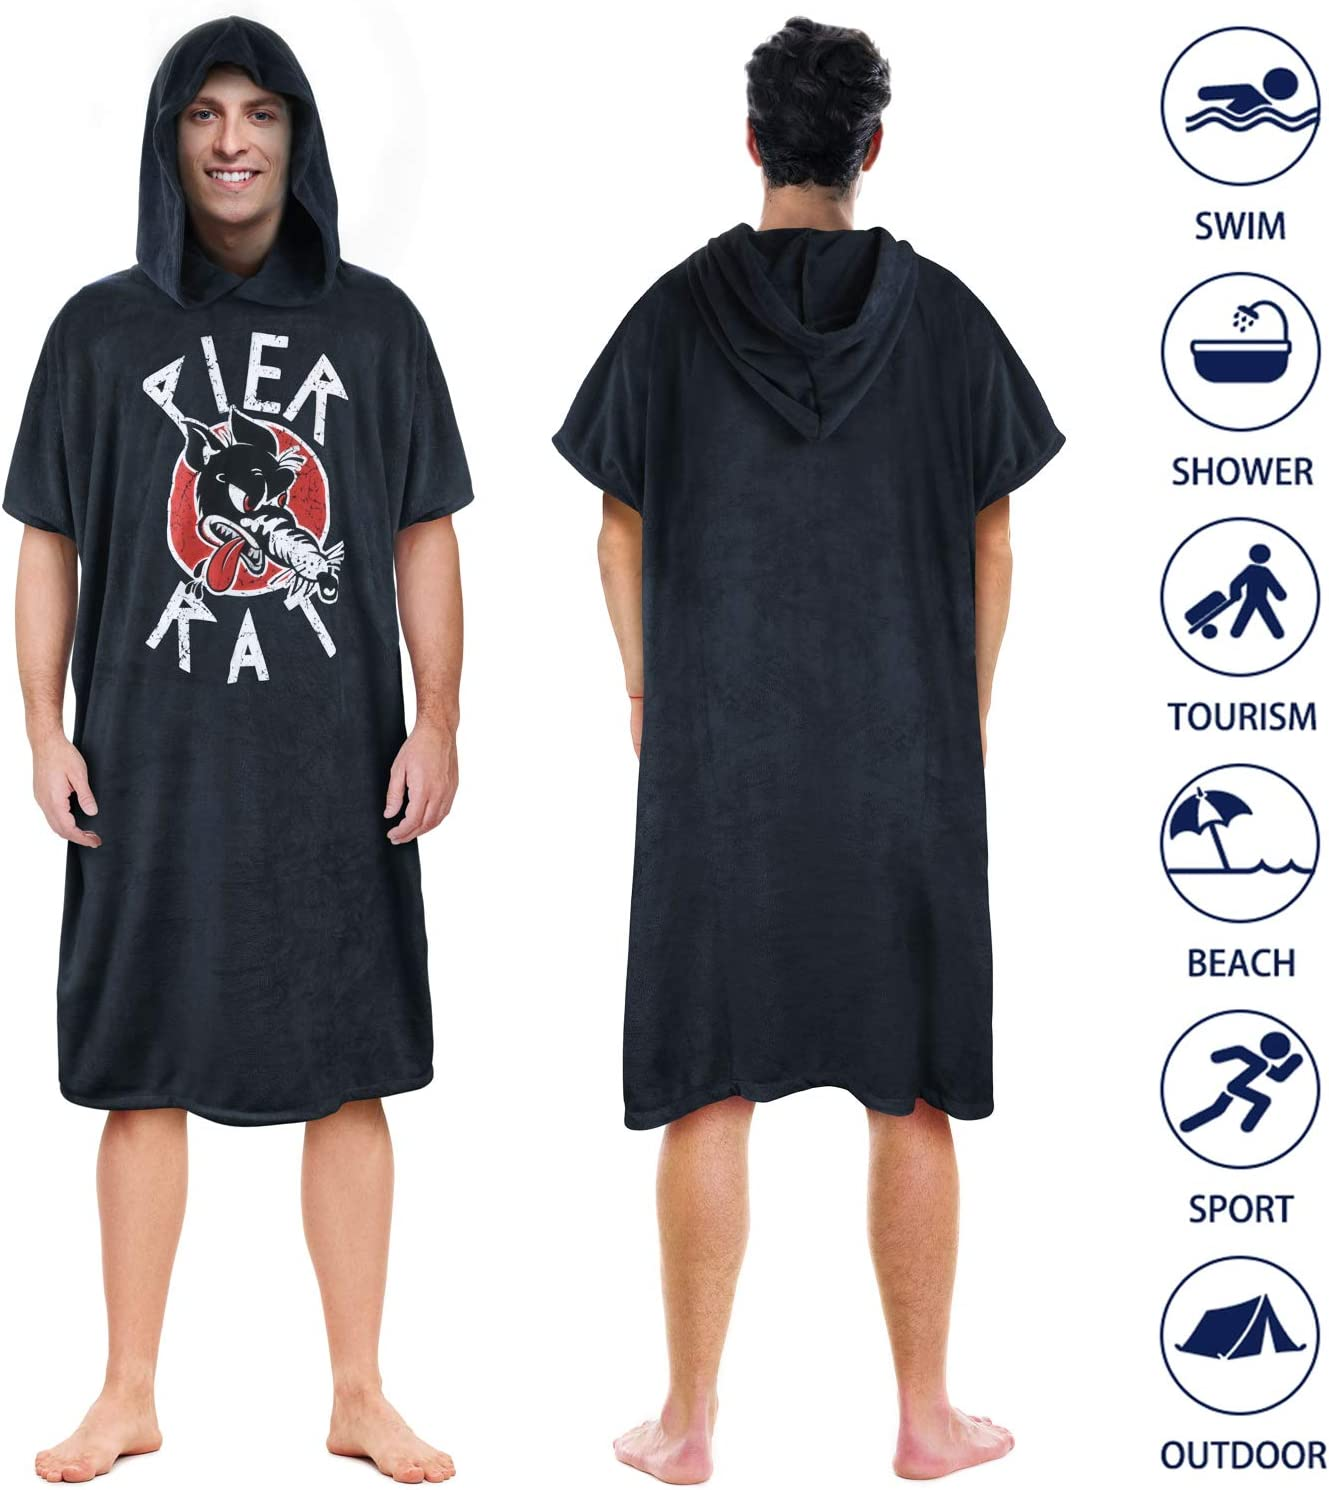 MYLUNE HOME Hooded Changing Robes Towel Unisex Quick-drying Diving Cloak for Surfing Swimming Wetsuit Changing